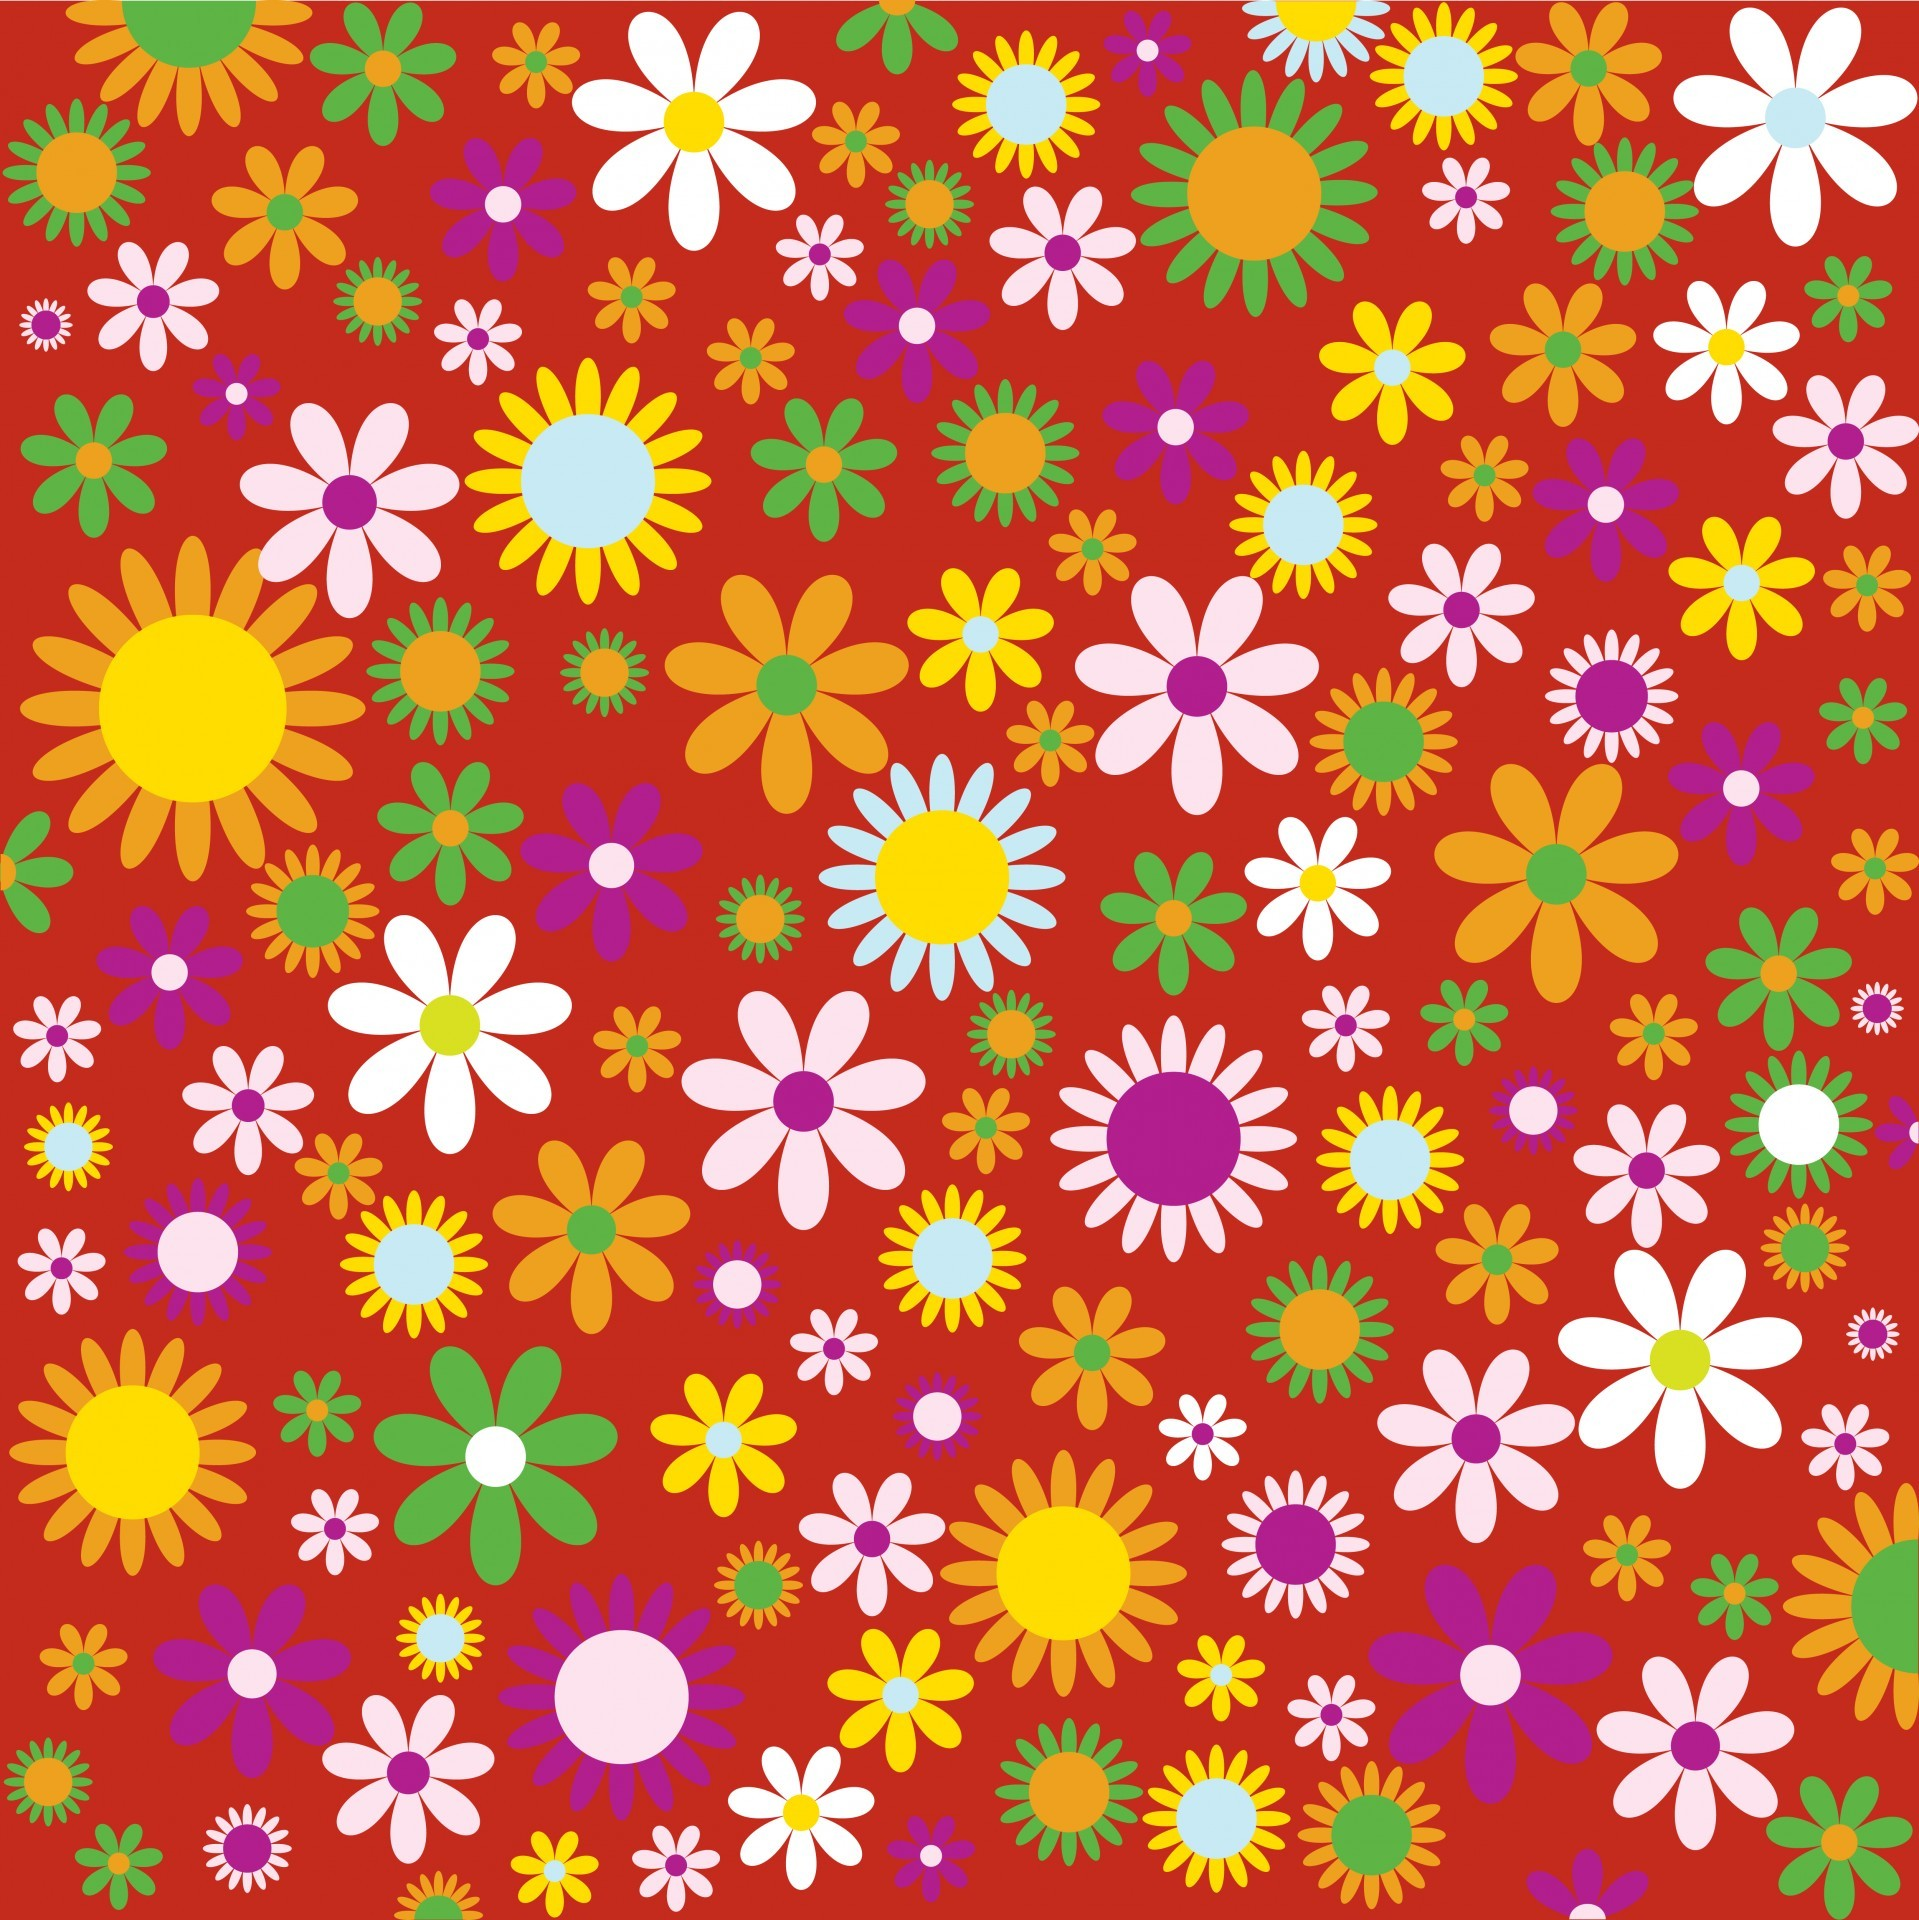 1919x1920 Flowers, Floral Background Colorful